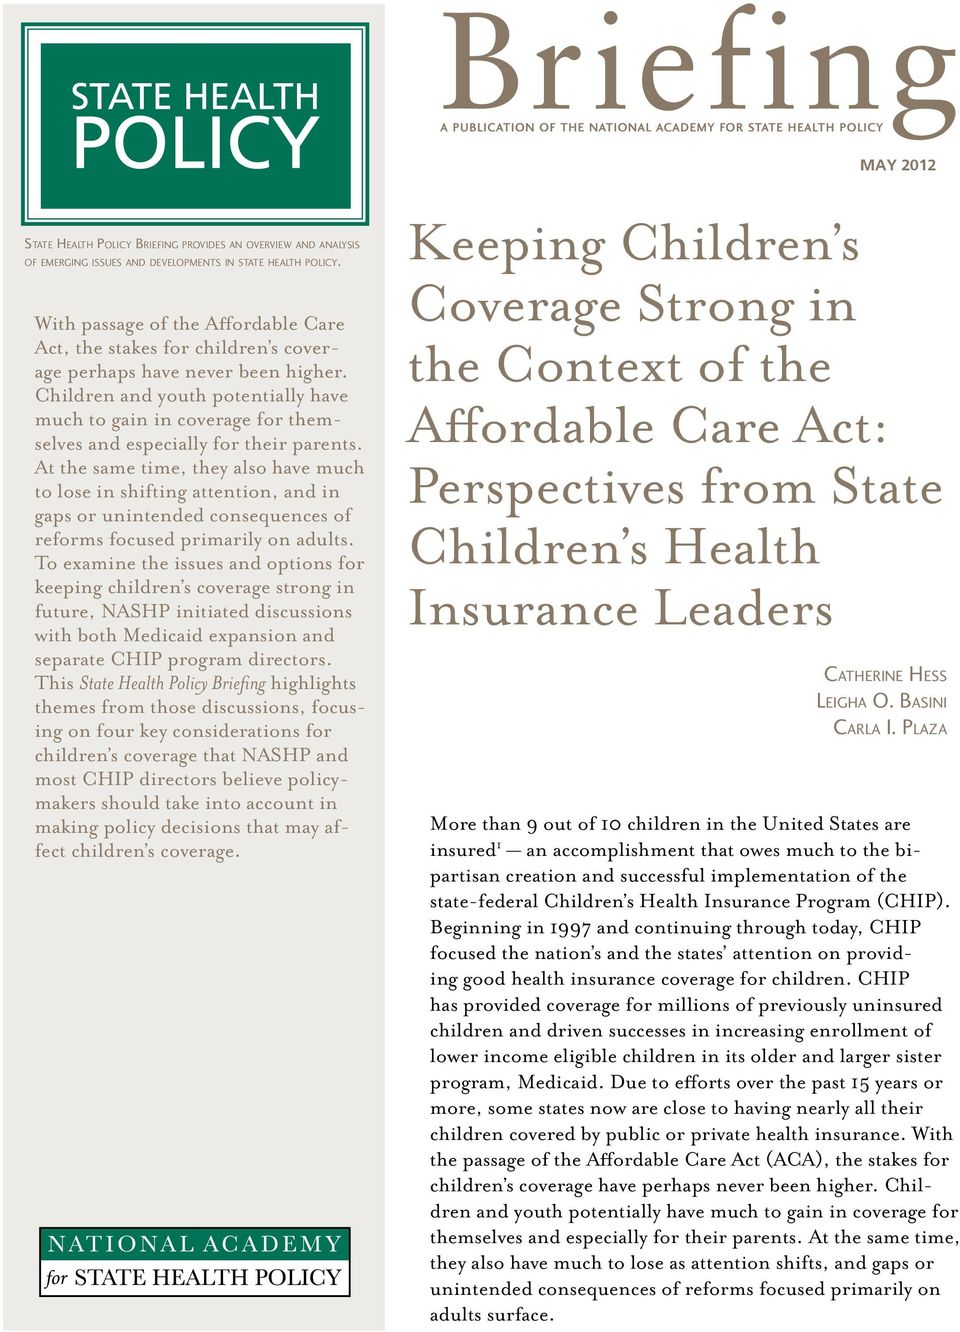 Children and youth potentially have much to gain in coverage for themselves and especially for their parents.